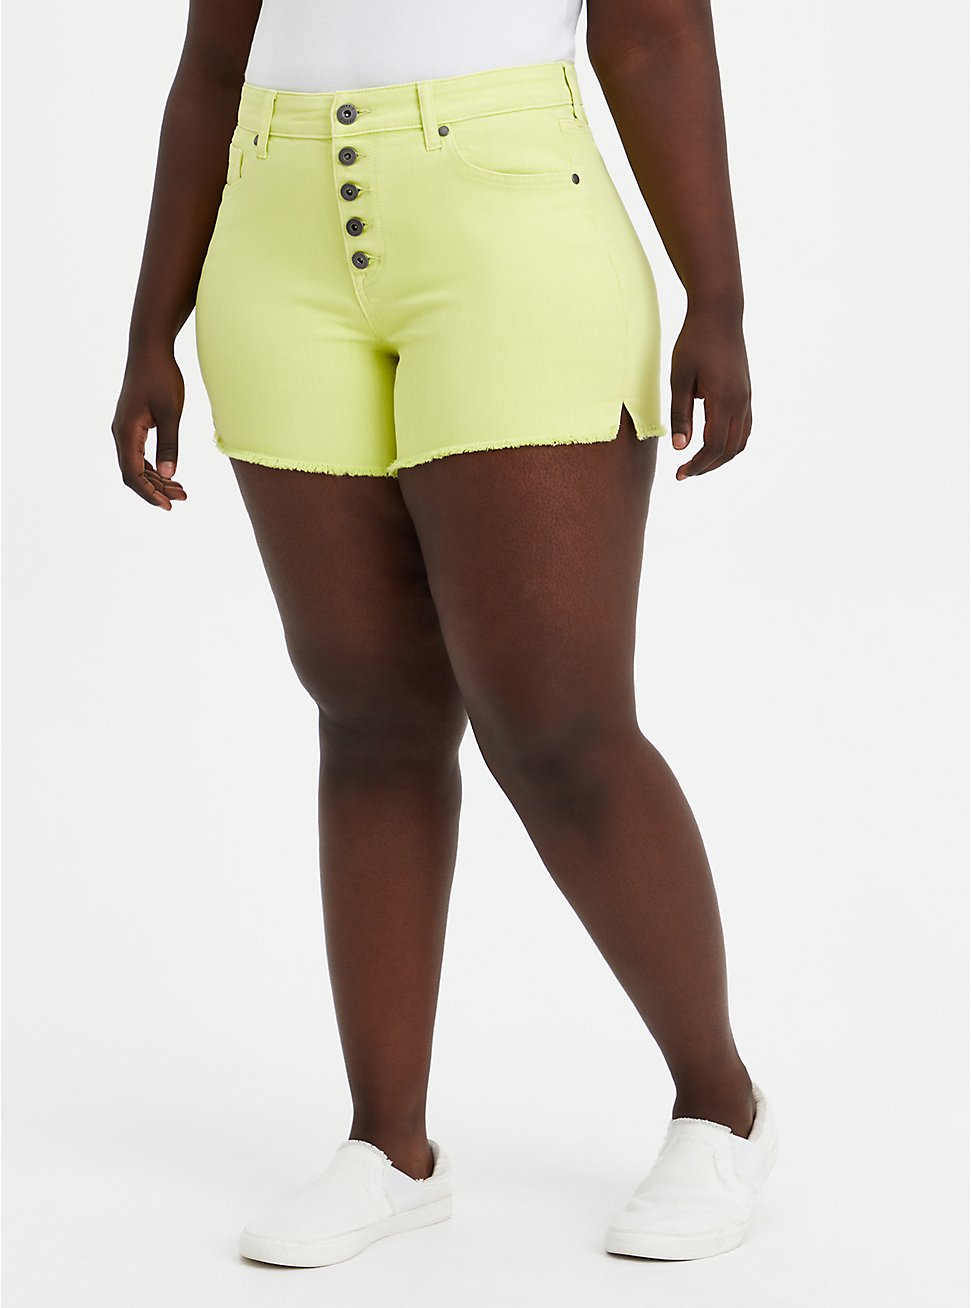 High Rise Midi Short - Vintage Stretch Yellow, , fitModel1-hires